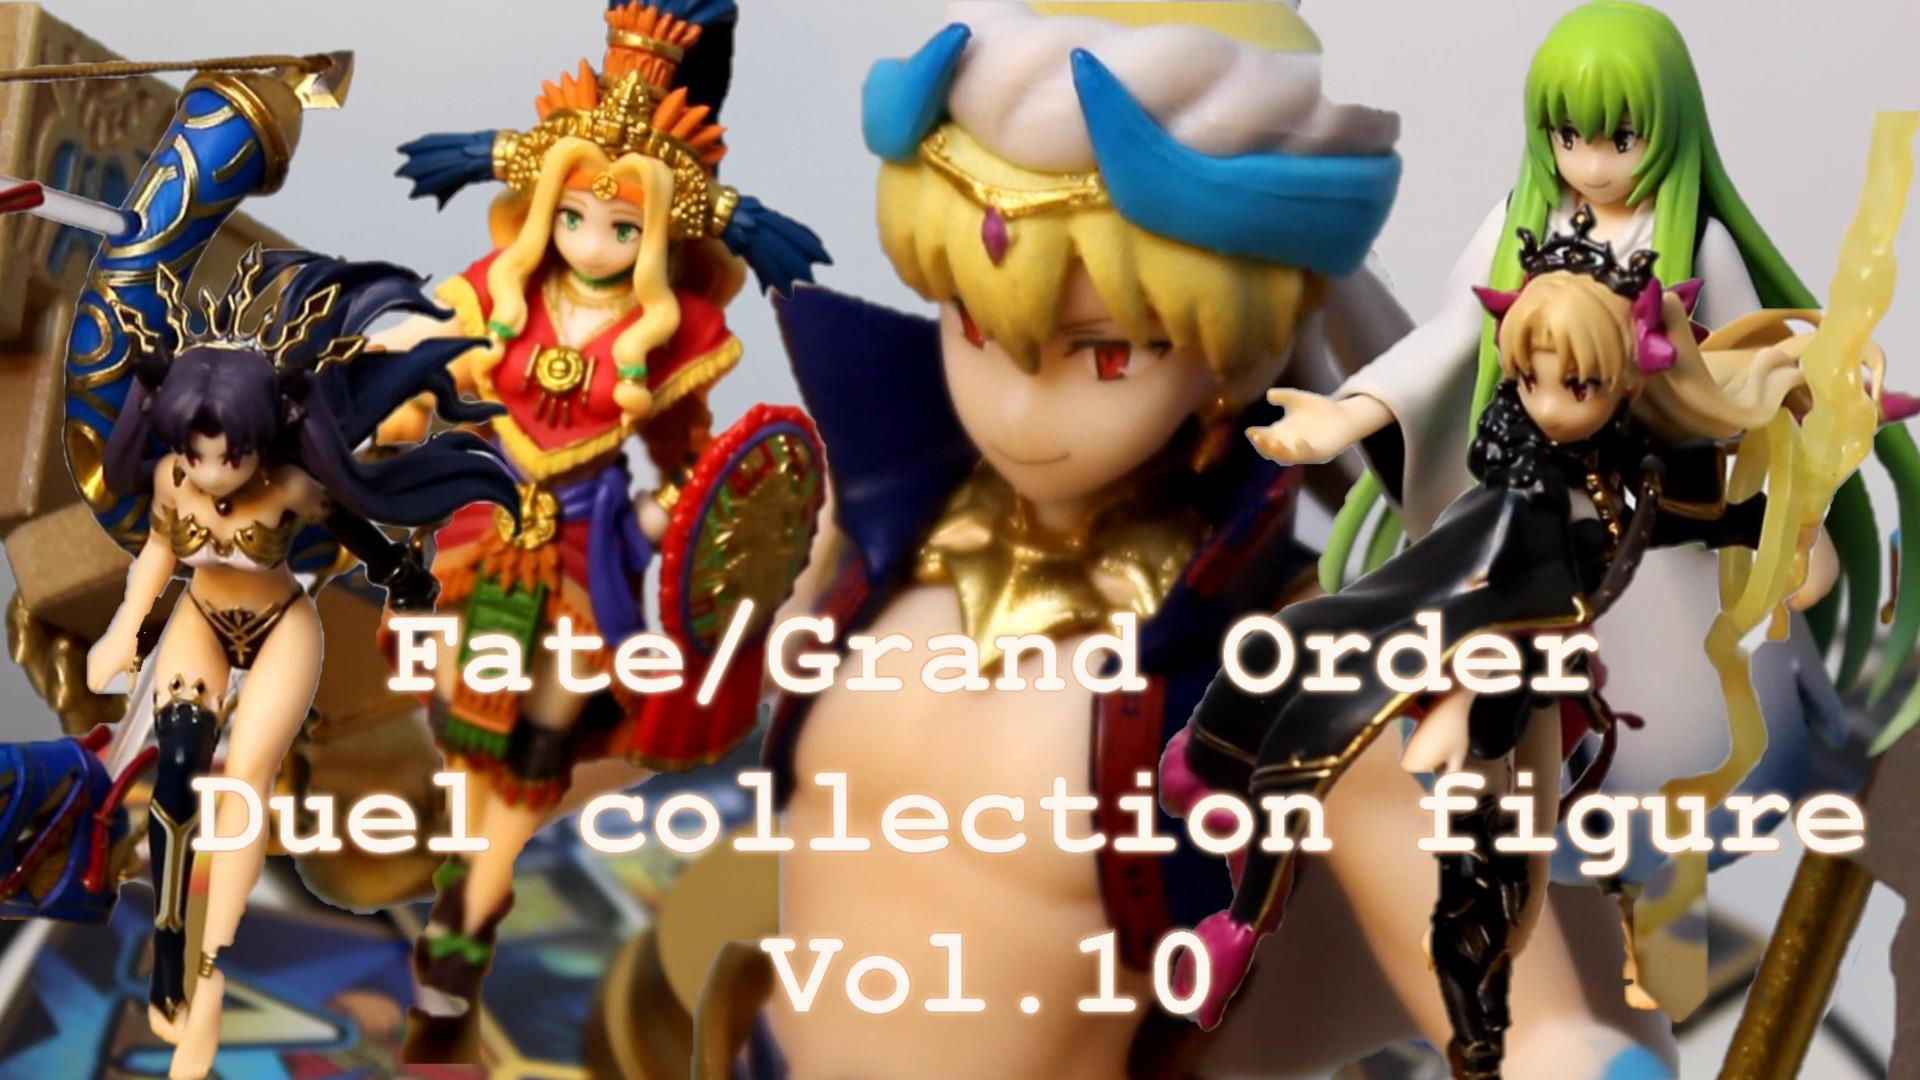 [Fate/Grand Order] Duel collection figure Vol.10 review(Unboxing ANIPLEX+) 絶対魔獣戦線バビロニアエレシュキガル イシュタル_e0251890_11274431.jpg